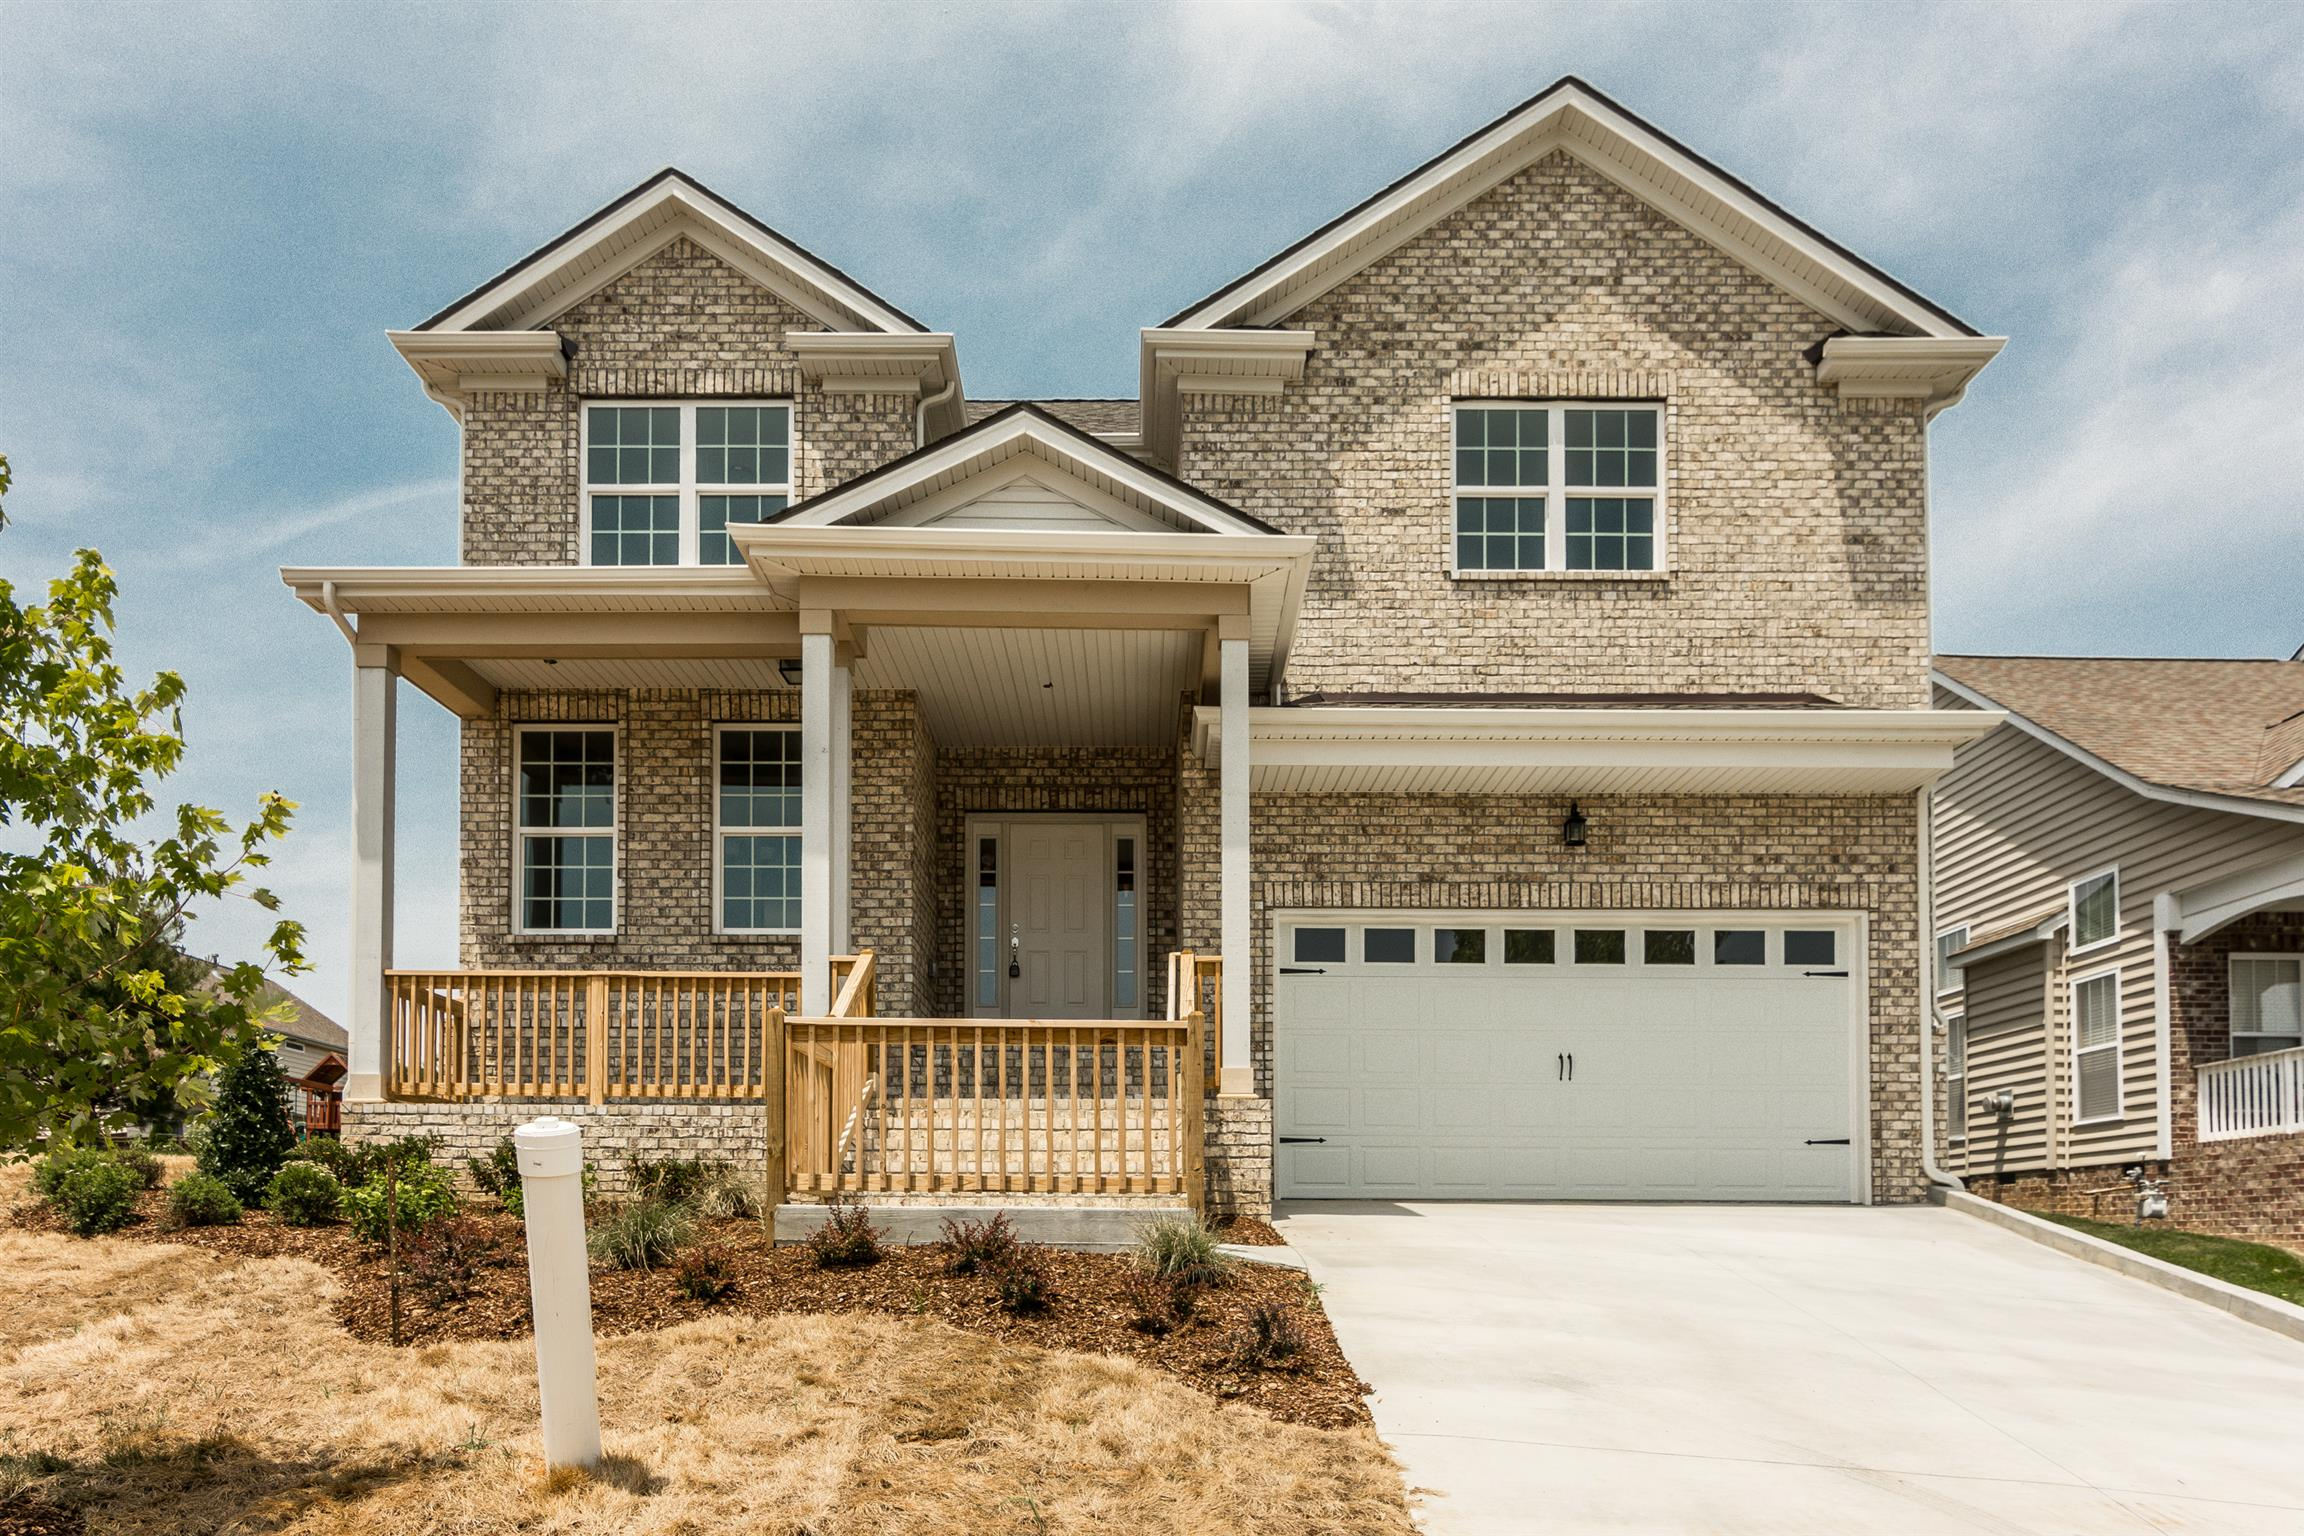 103 Sleepy Hollow Ct, Hendersonville, Tennessee